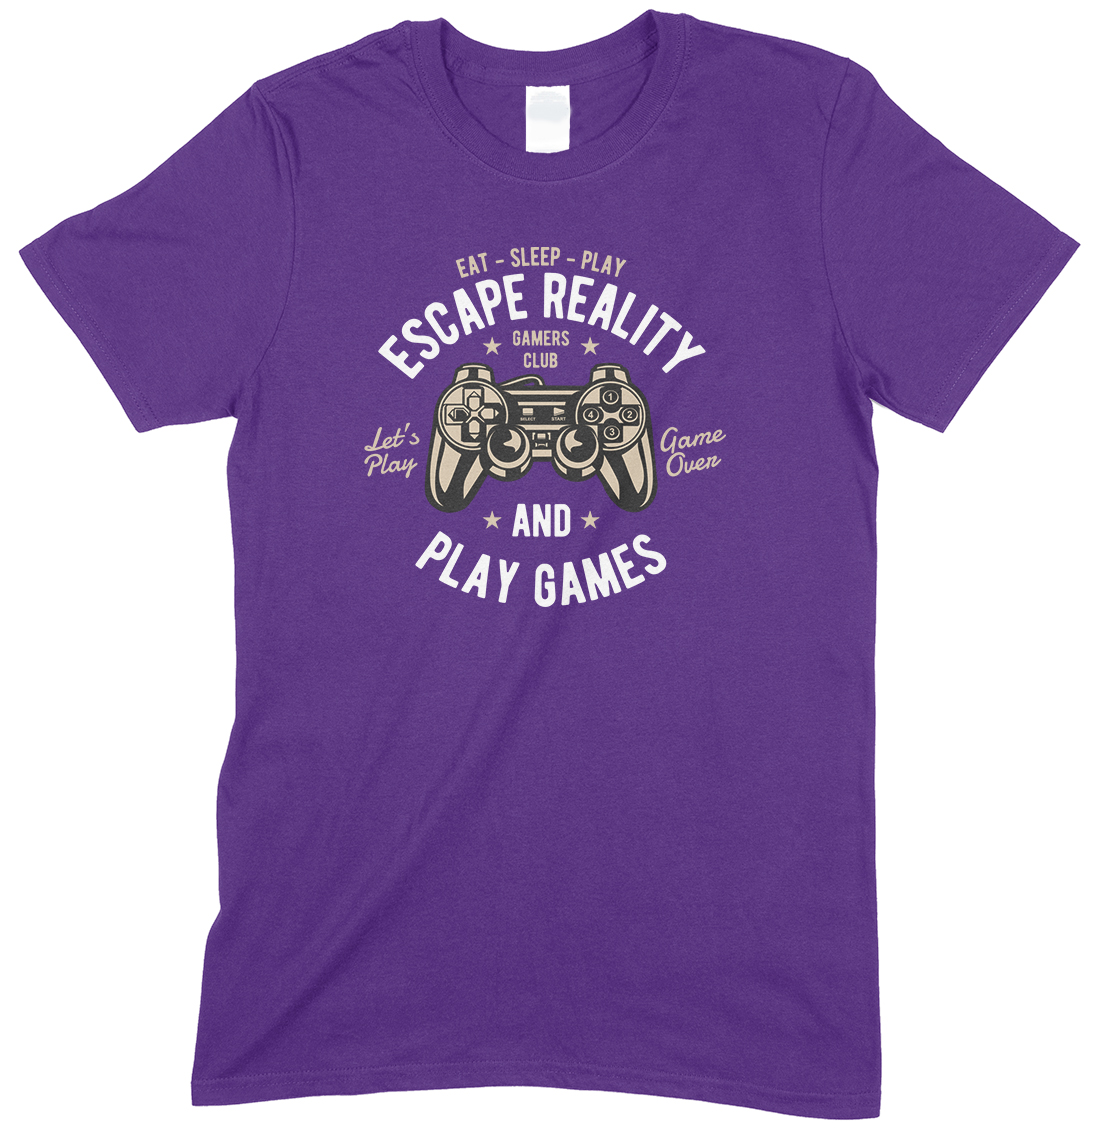 Eat Sleep Play Escape Reality and Play Games - UnisexT-Shirts-Girls-Boys